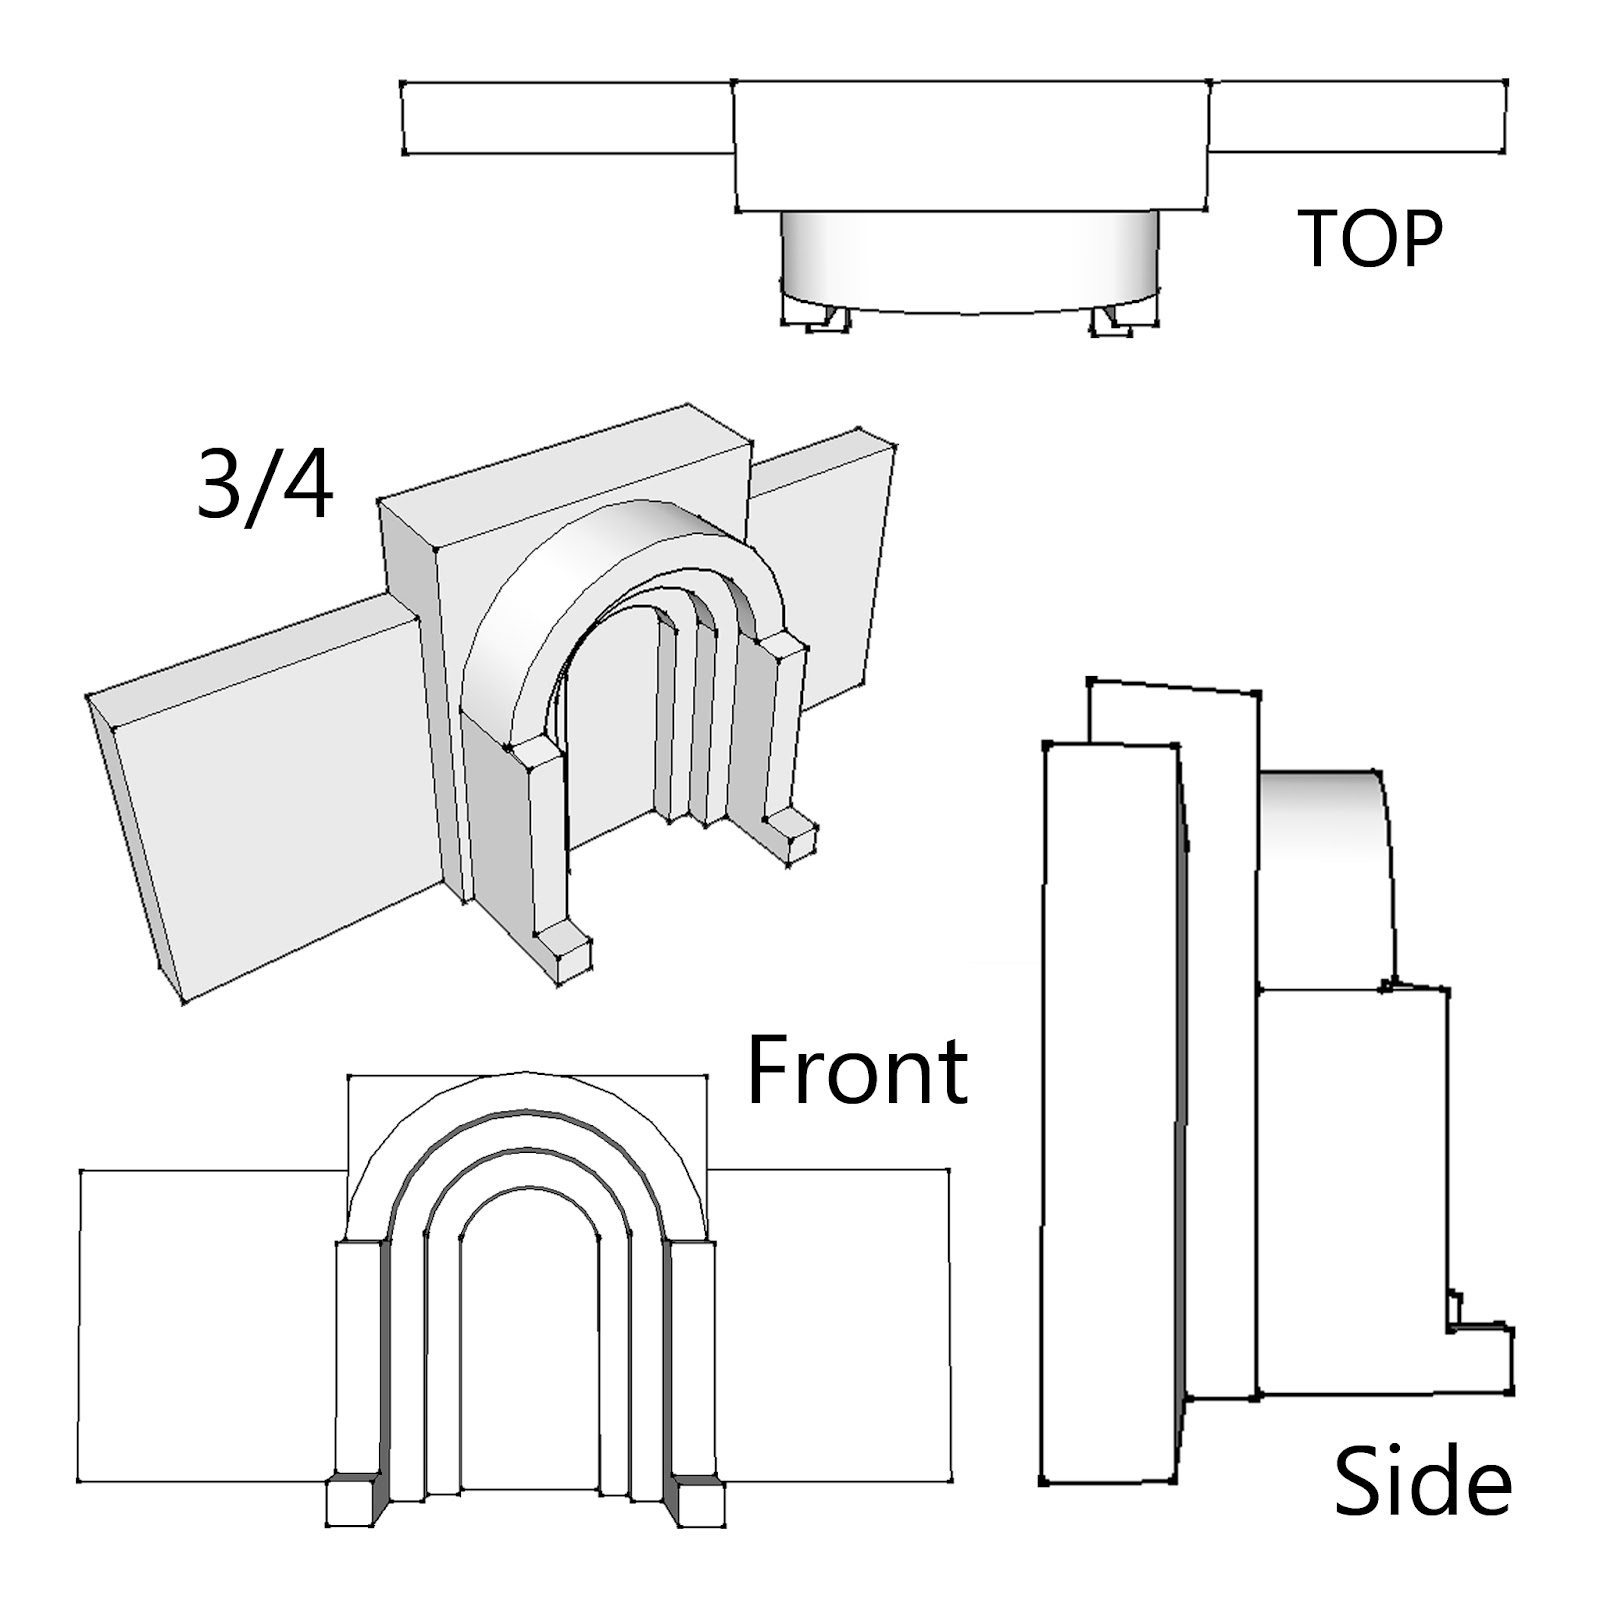 Simple Orthographic Drawing